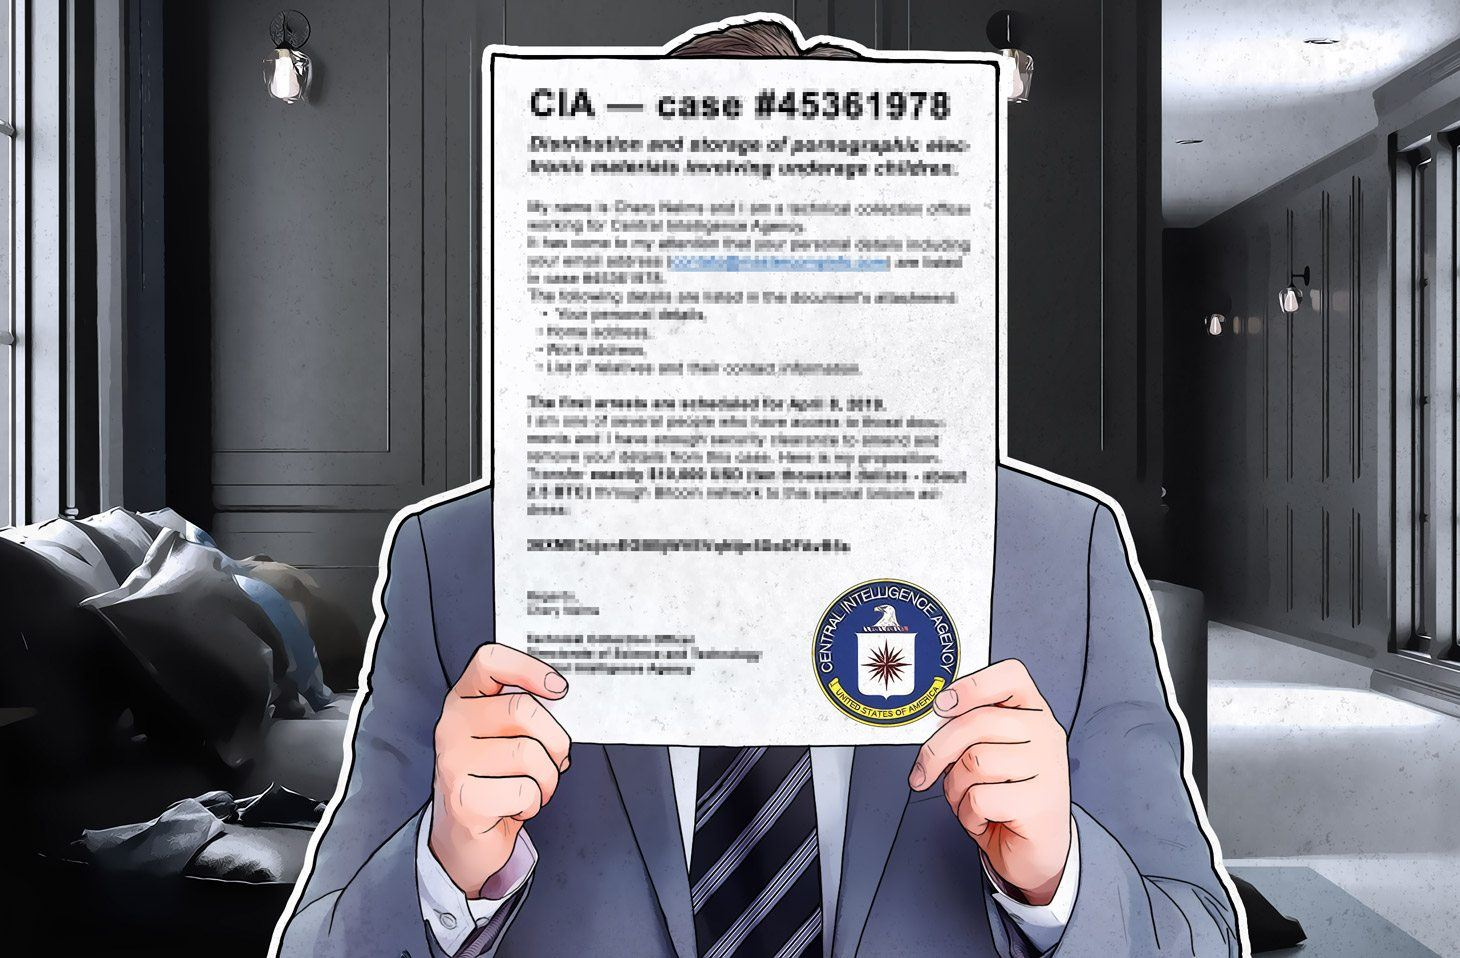 A message, supposedly from the CIA, threatening arrest for possession of child porn and demanding a ransom